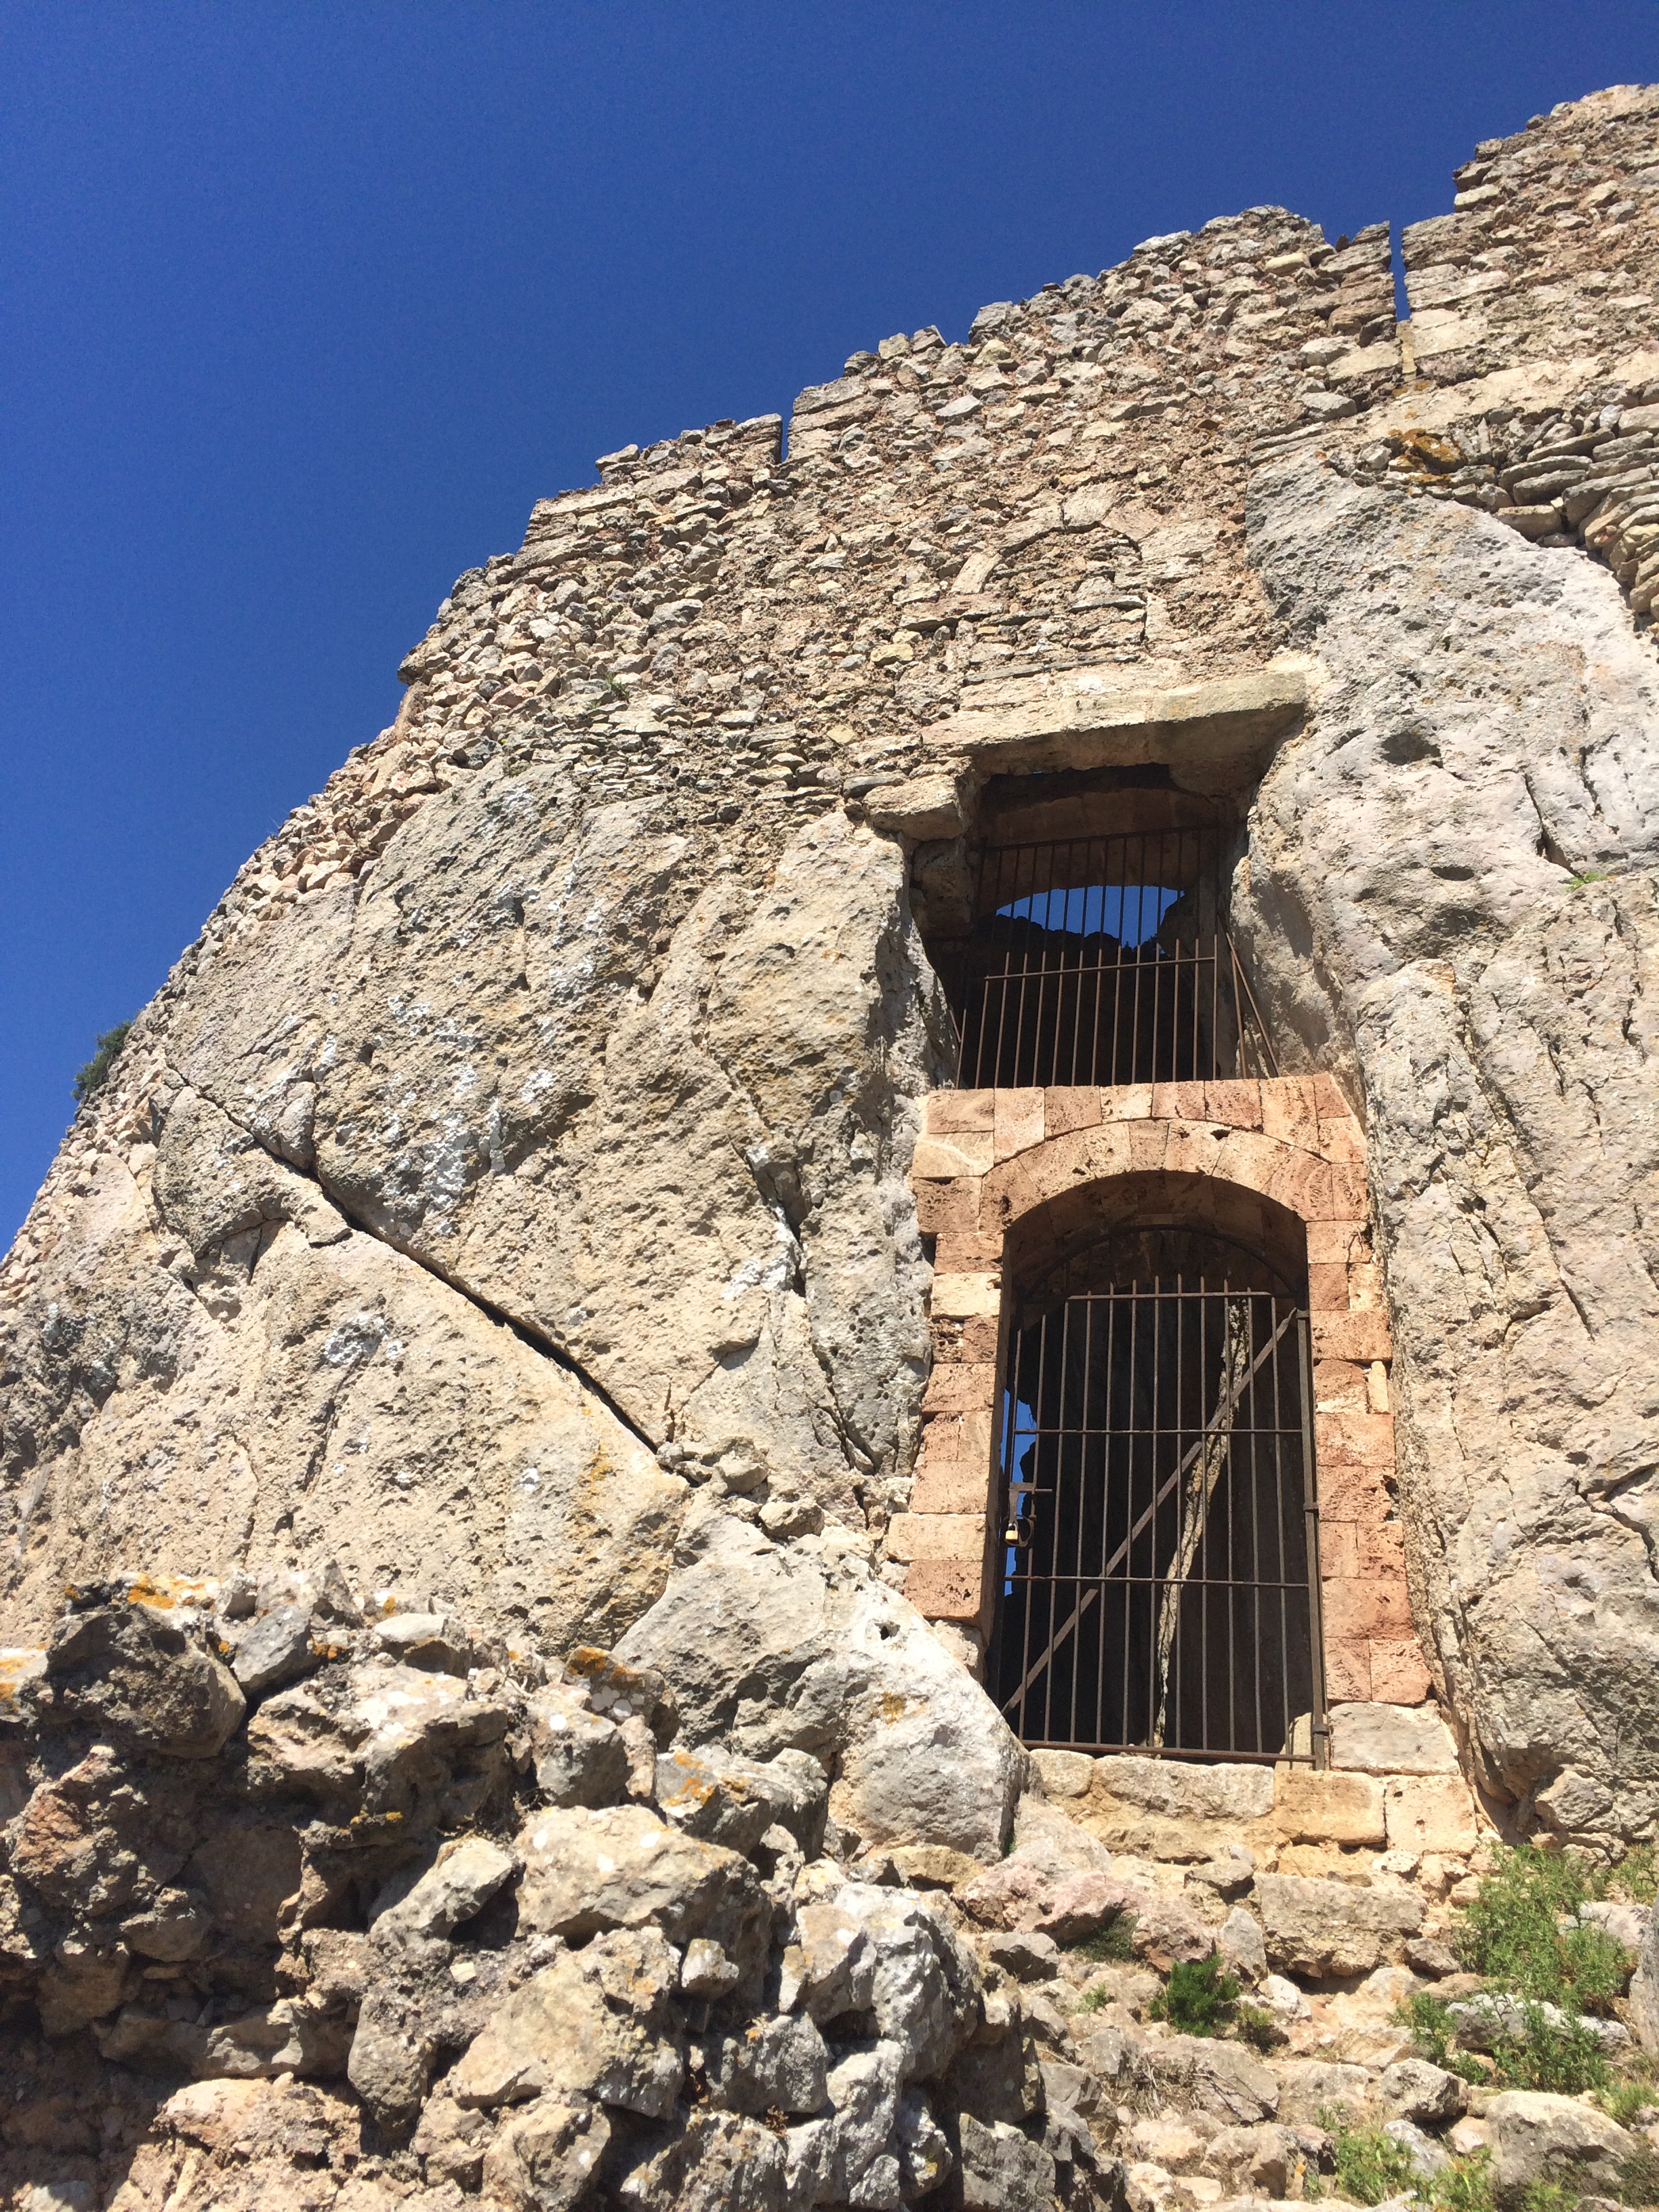 The entrance to the fortress was unfortunately locked.